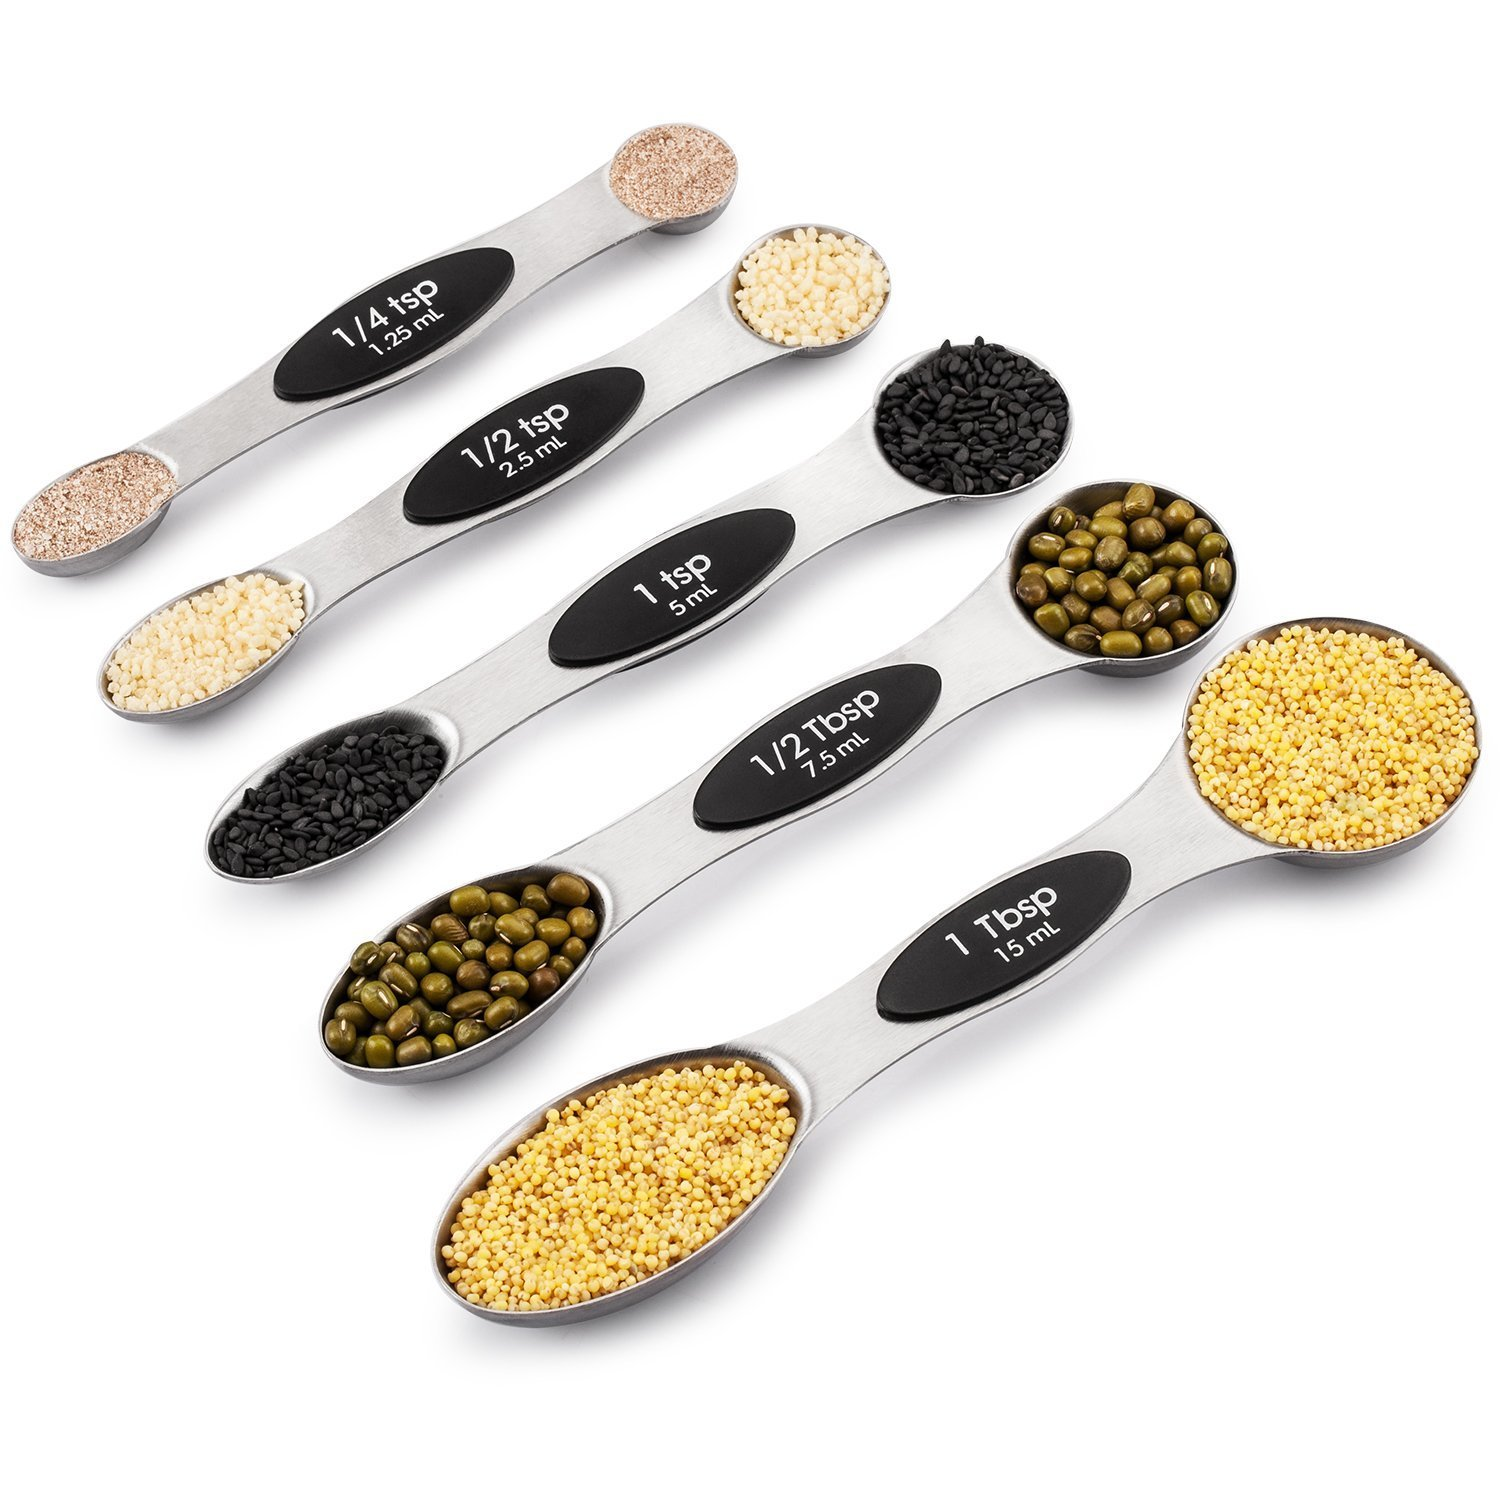 MZCH Measuring Spoons, Double Sided Magnetic Baking and Cooking Kitchen Set, Fits in Spice Jar, Set of 5, Black